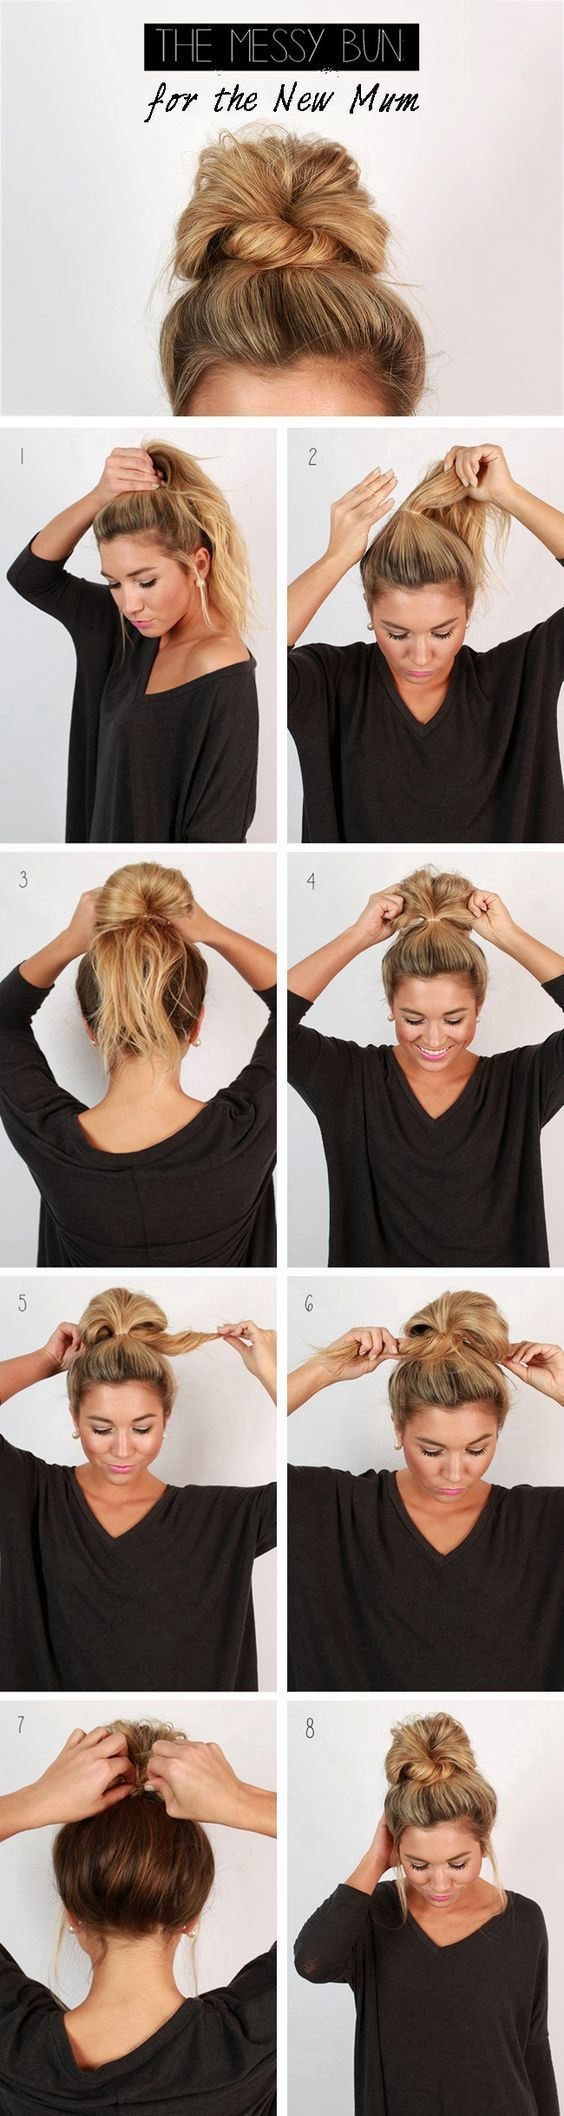 Whether you are going to school, work, family function, or even a date, here are some very fast and super cute hairstyles that take just a couple minutes.